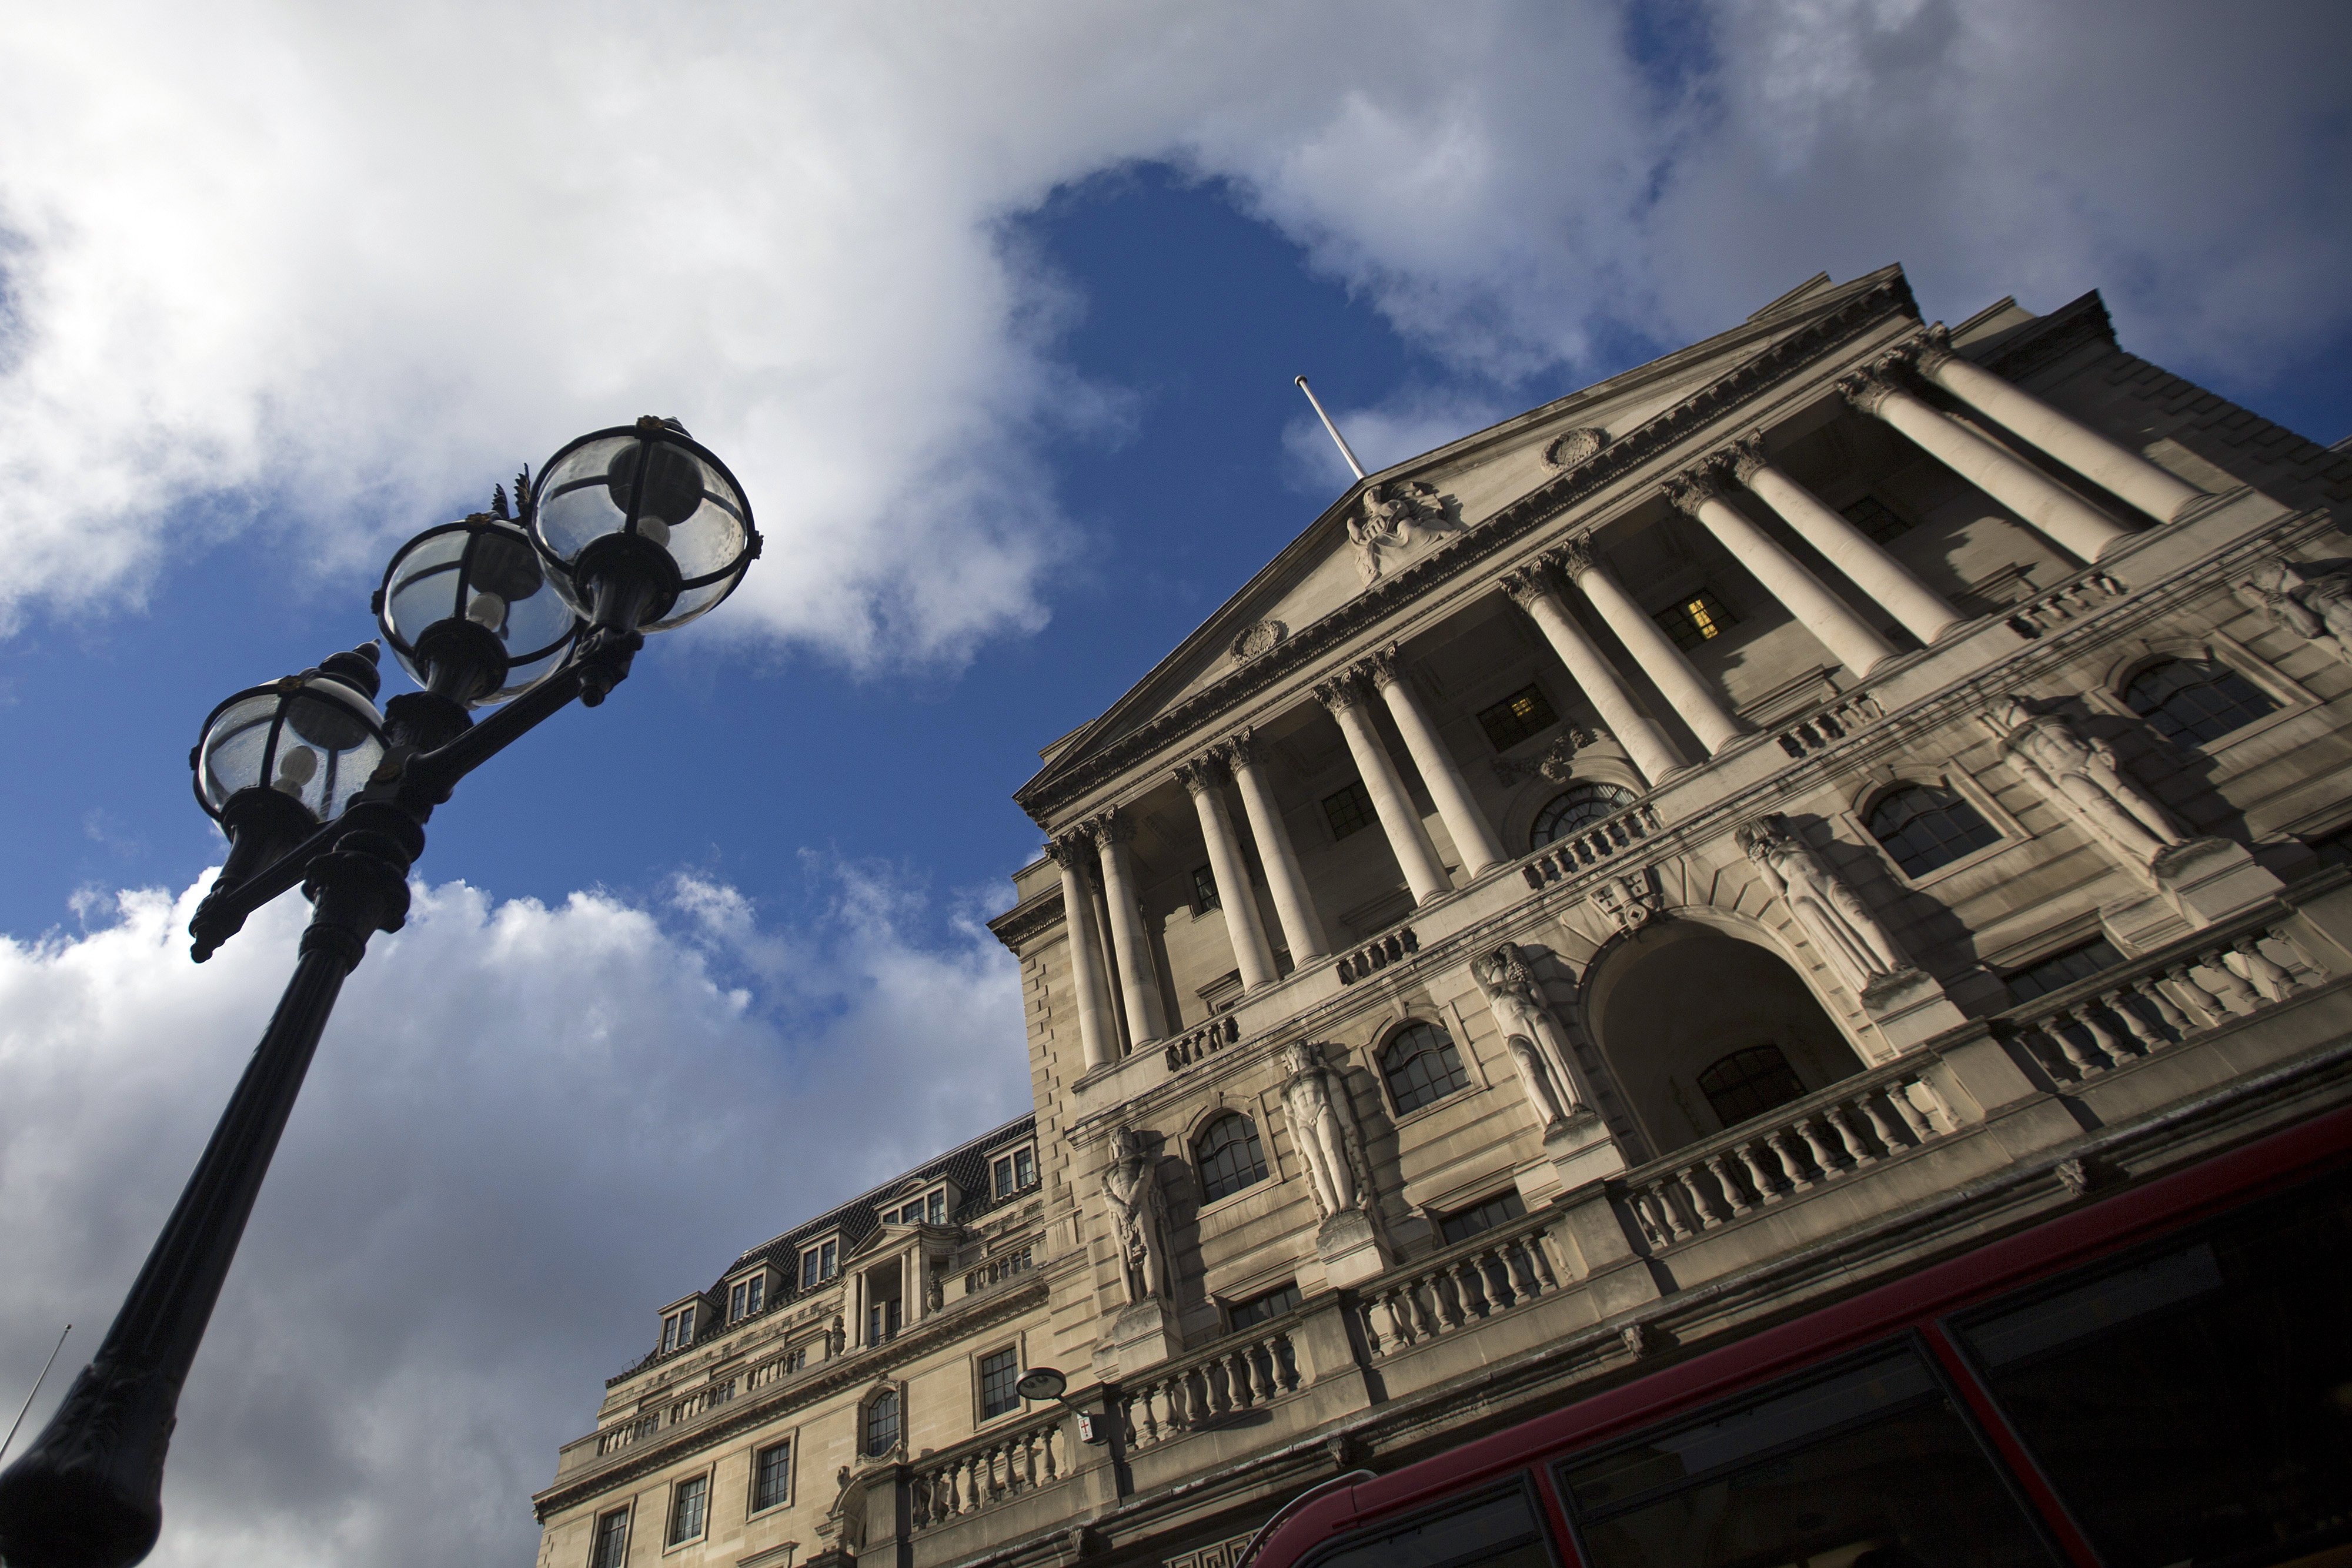 Mark Carney to stay on at BoE - EMEA brief 12 Sep